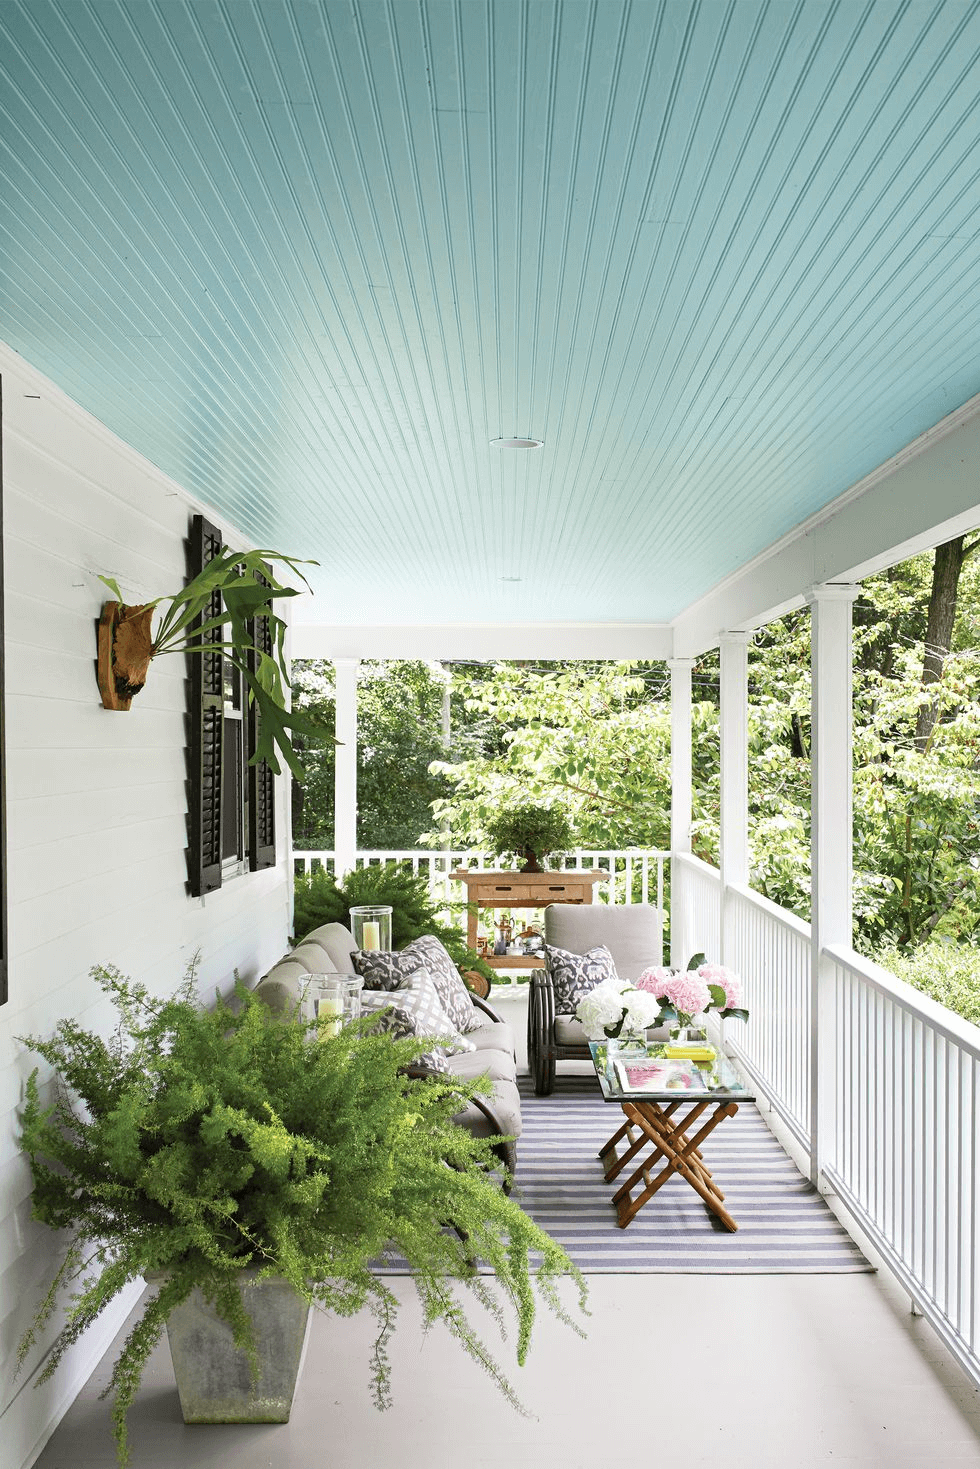 MODERN MINIMALIST BACKYARD PORCH DESIGN IDEAS